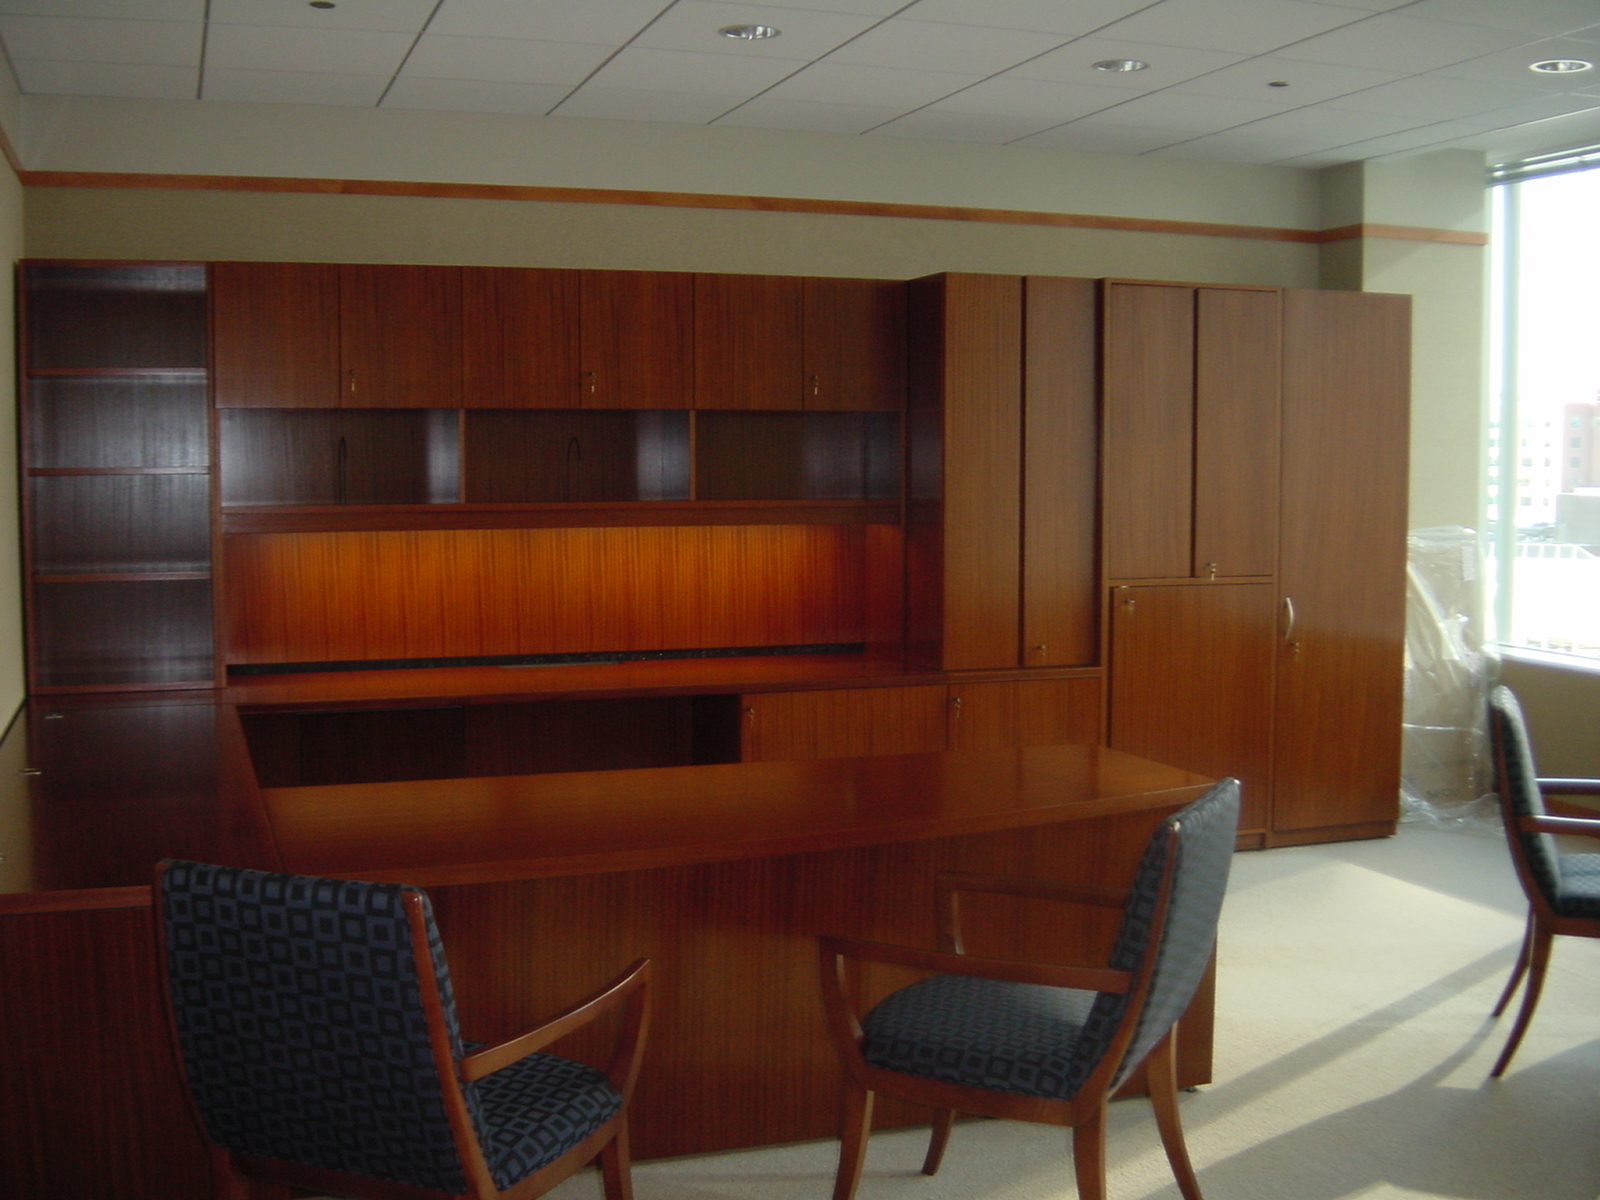 Pepsi Co 01.01 - Executive Office.JPG